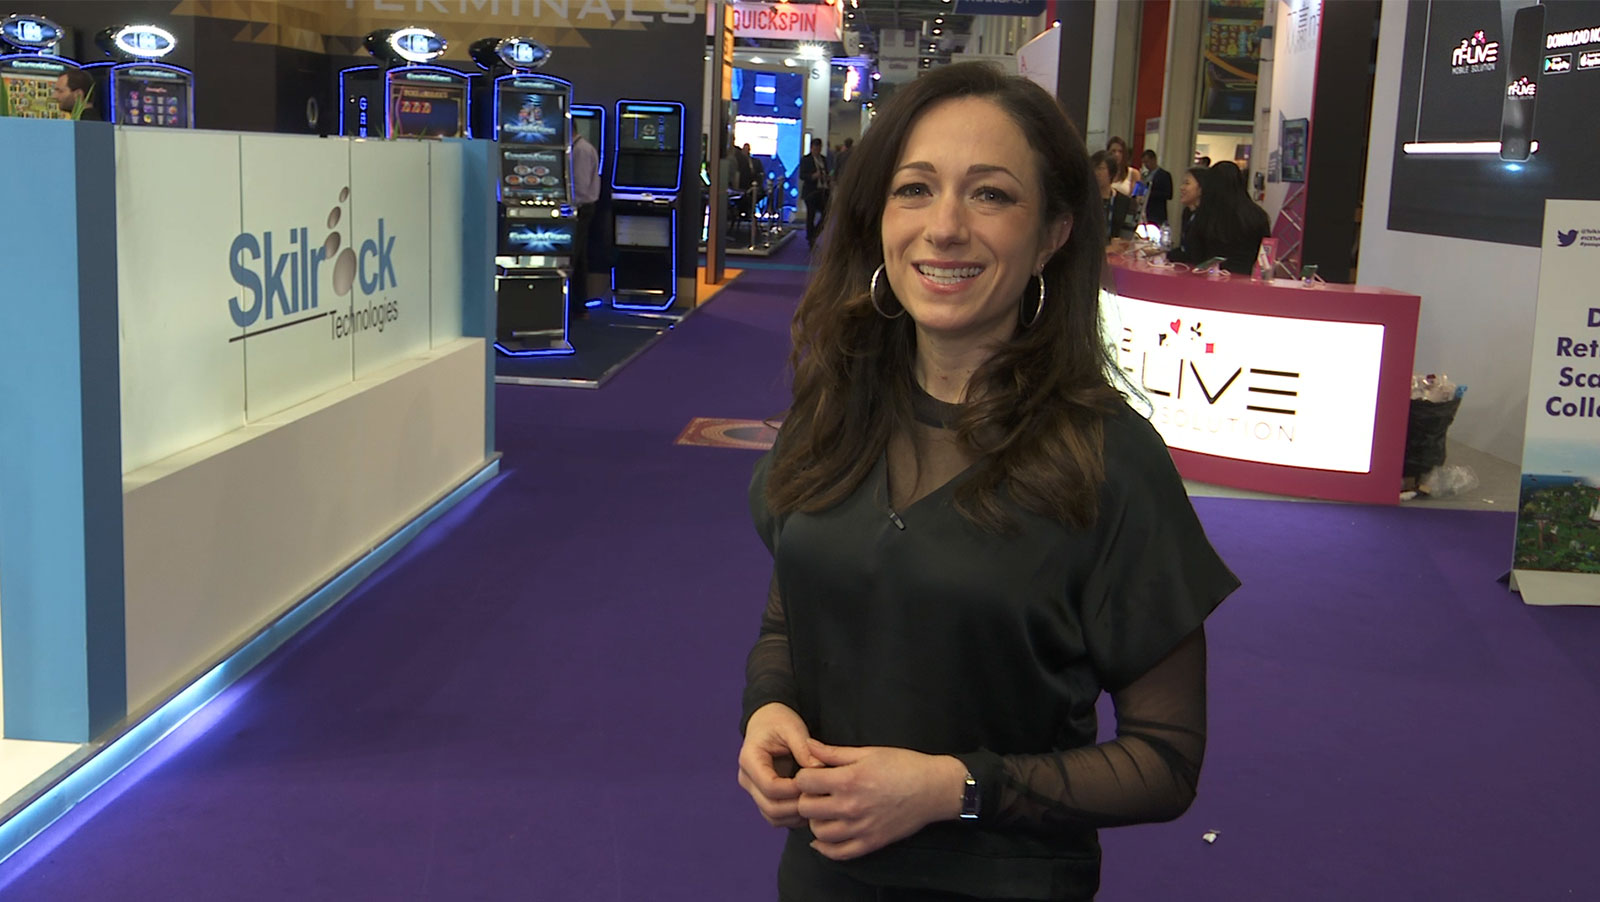 London Conference Week 2018 day three recap: ICE TOTALLY GAMING